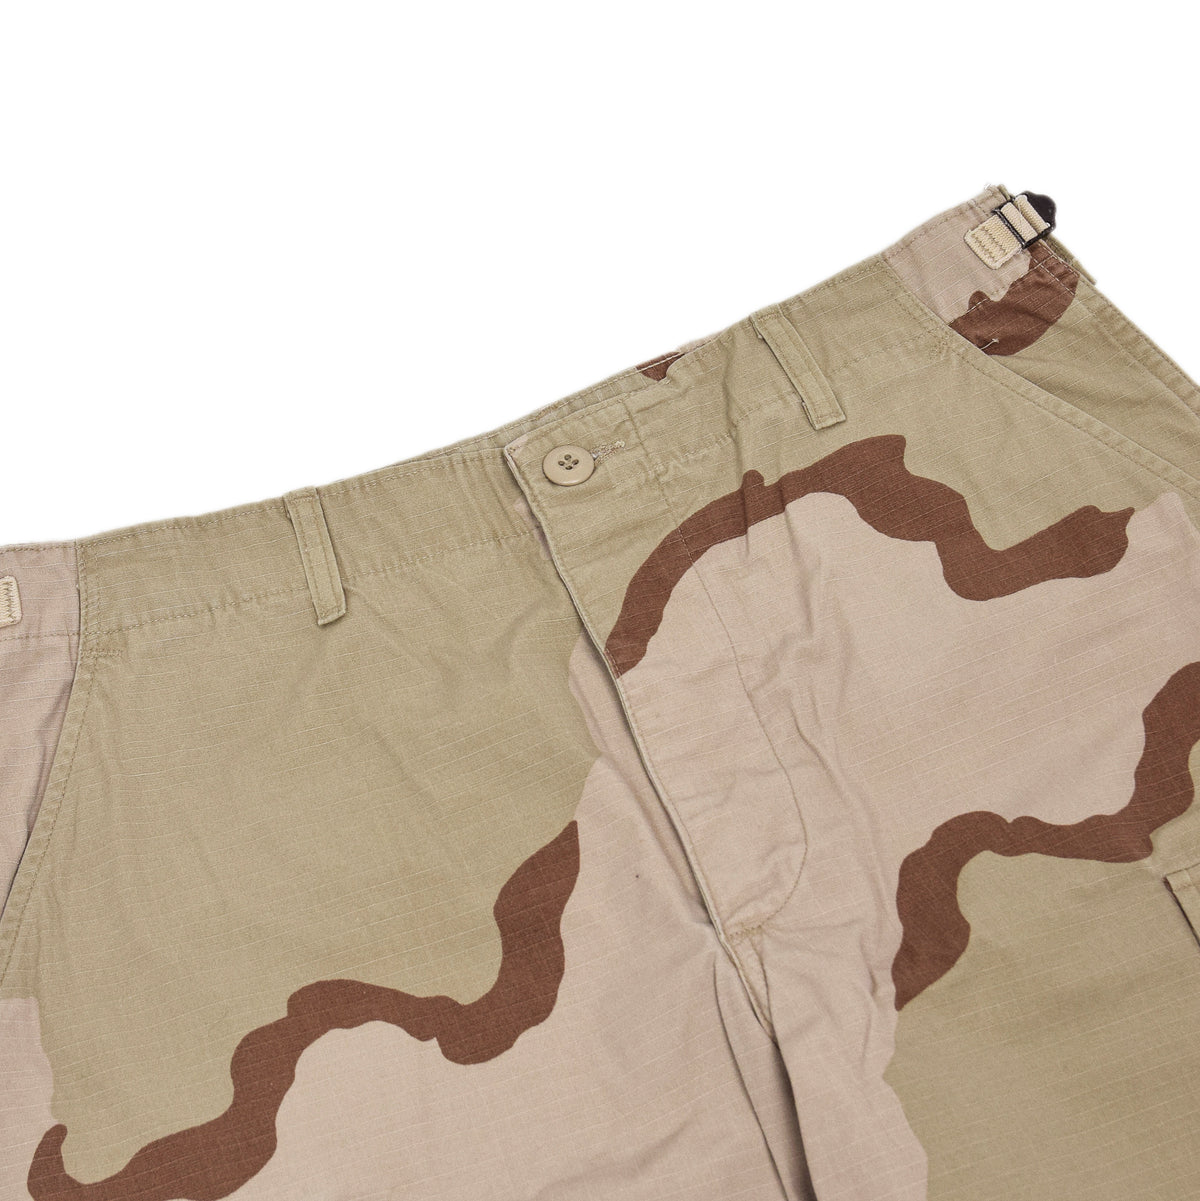 Vintage US Army Desert Camo Ripstop Cargo Combat Field Trousers M Short waistband